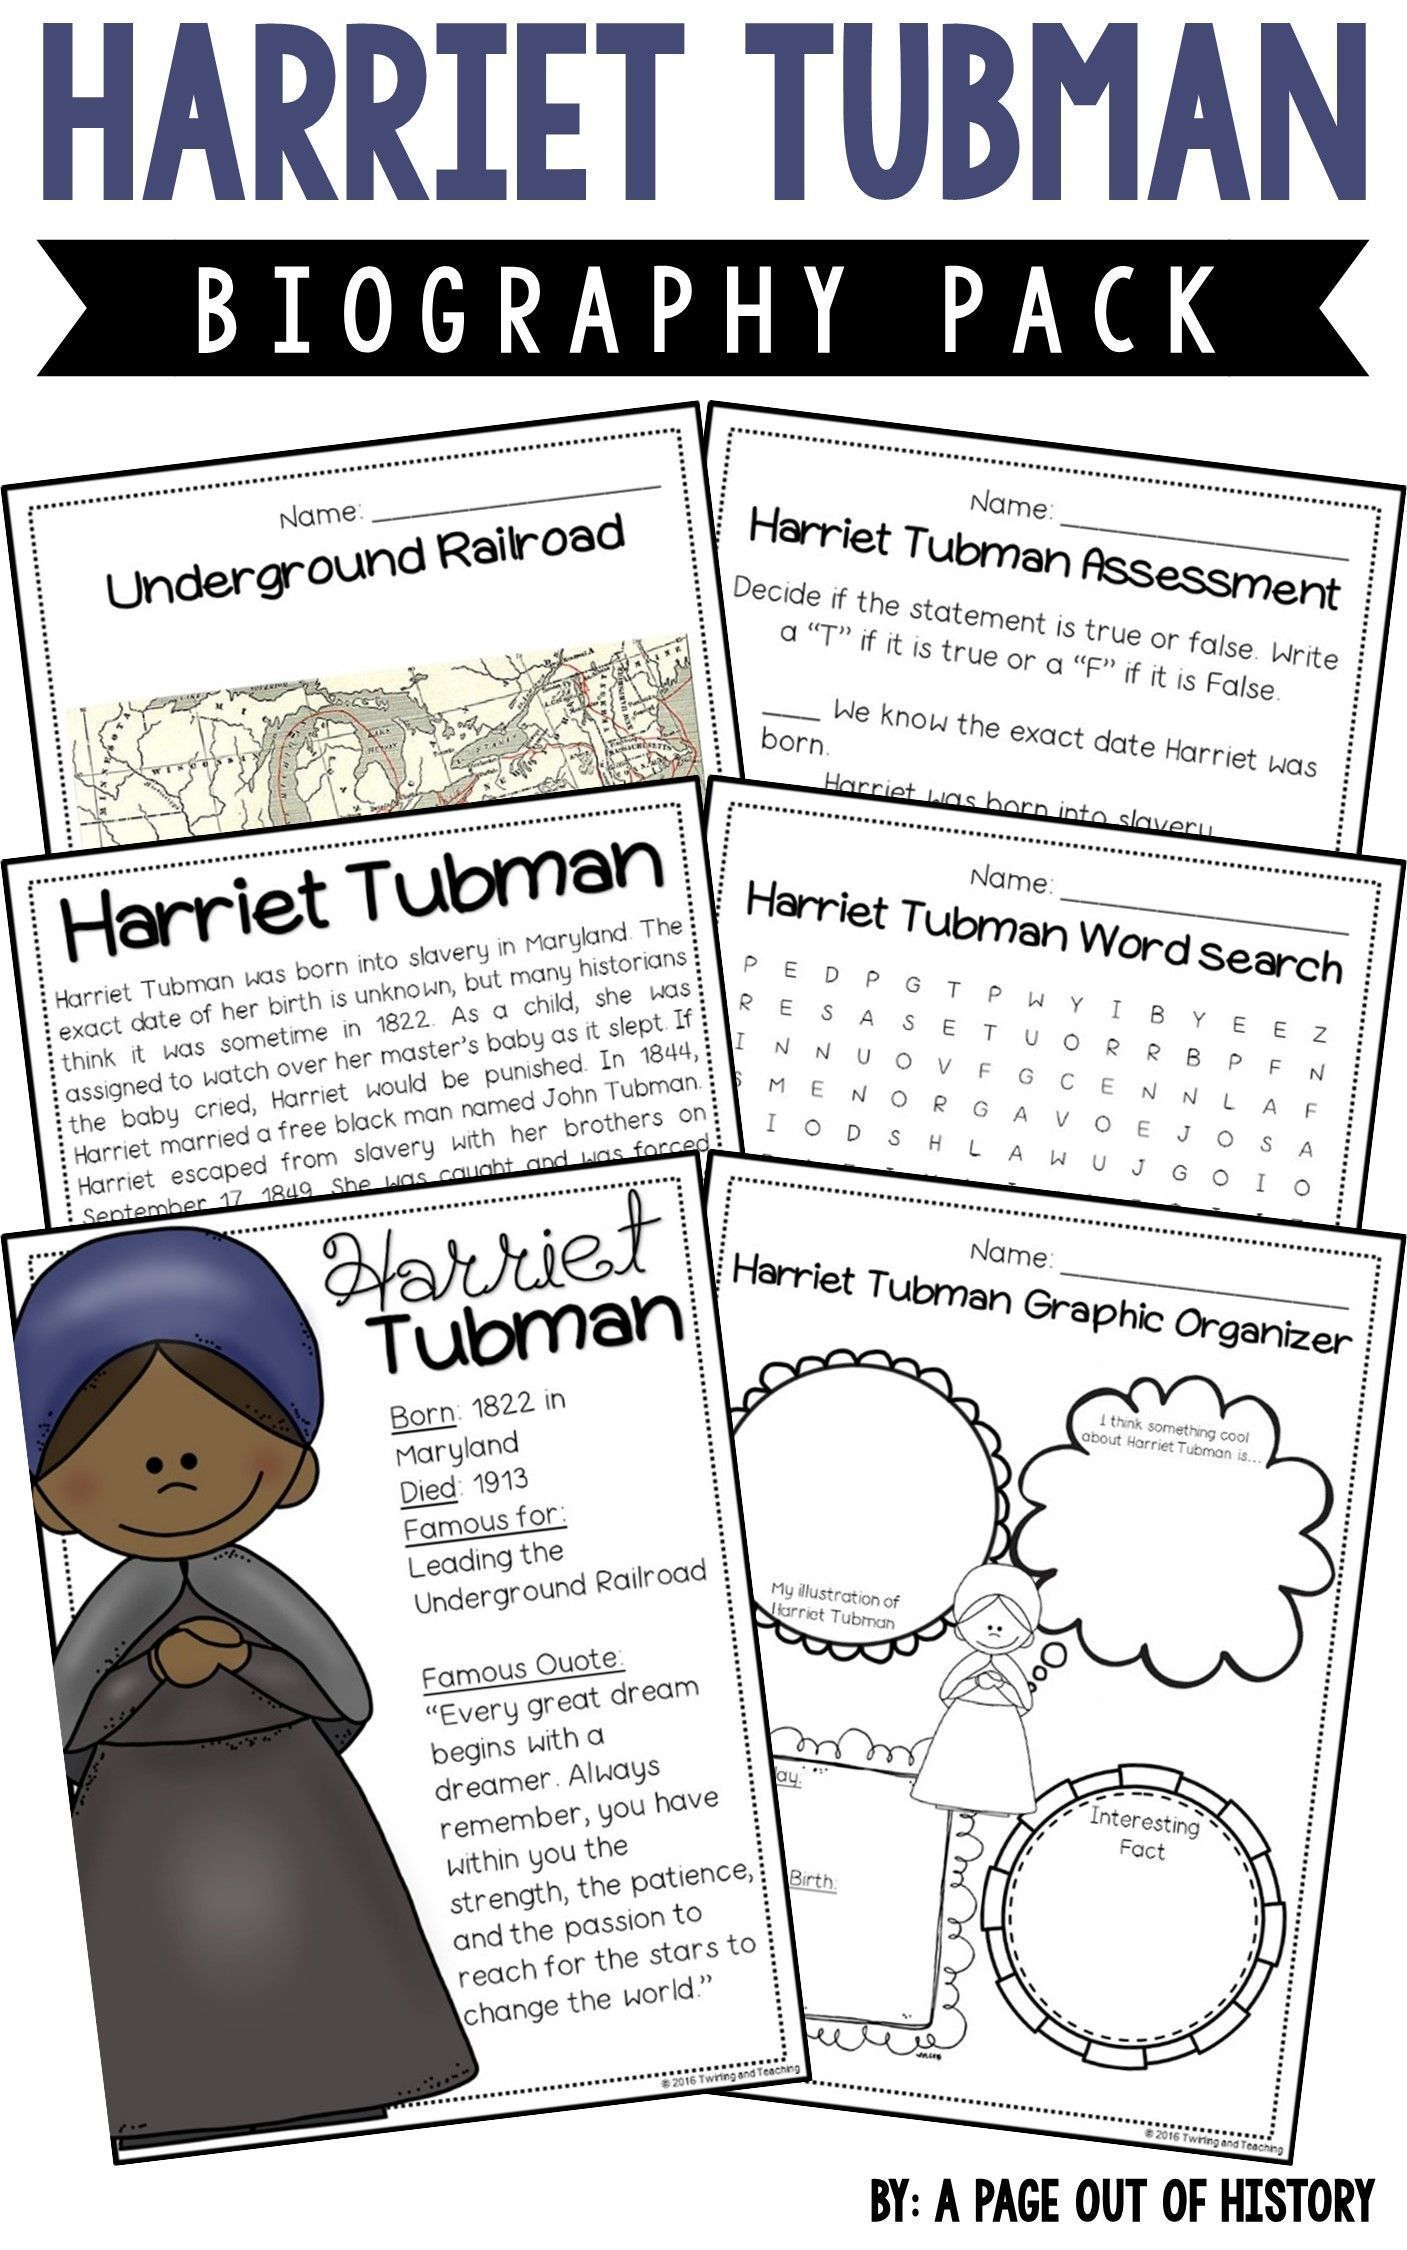 Harriet Tubman Biography Pack Black History Month